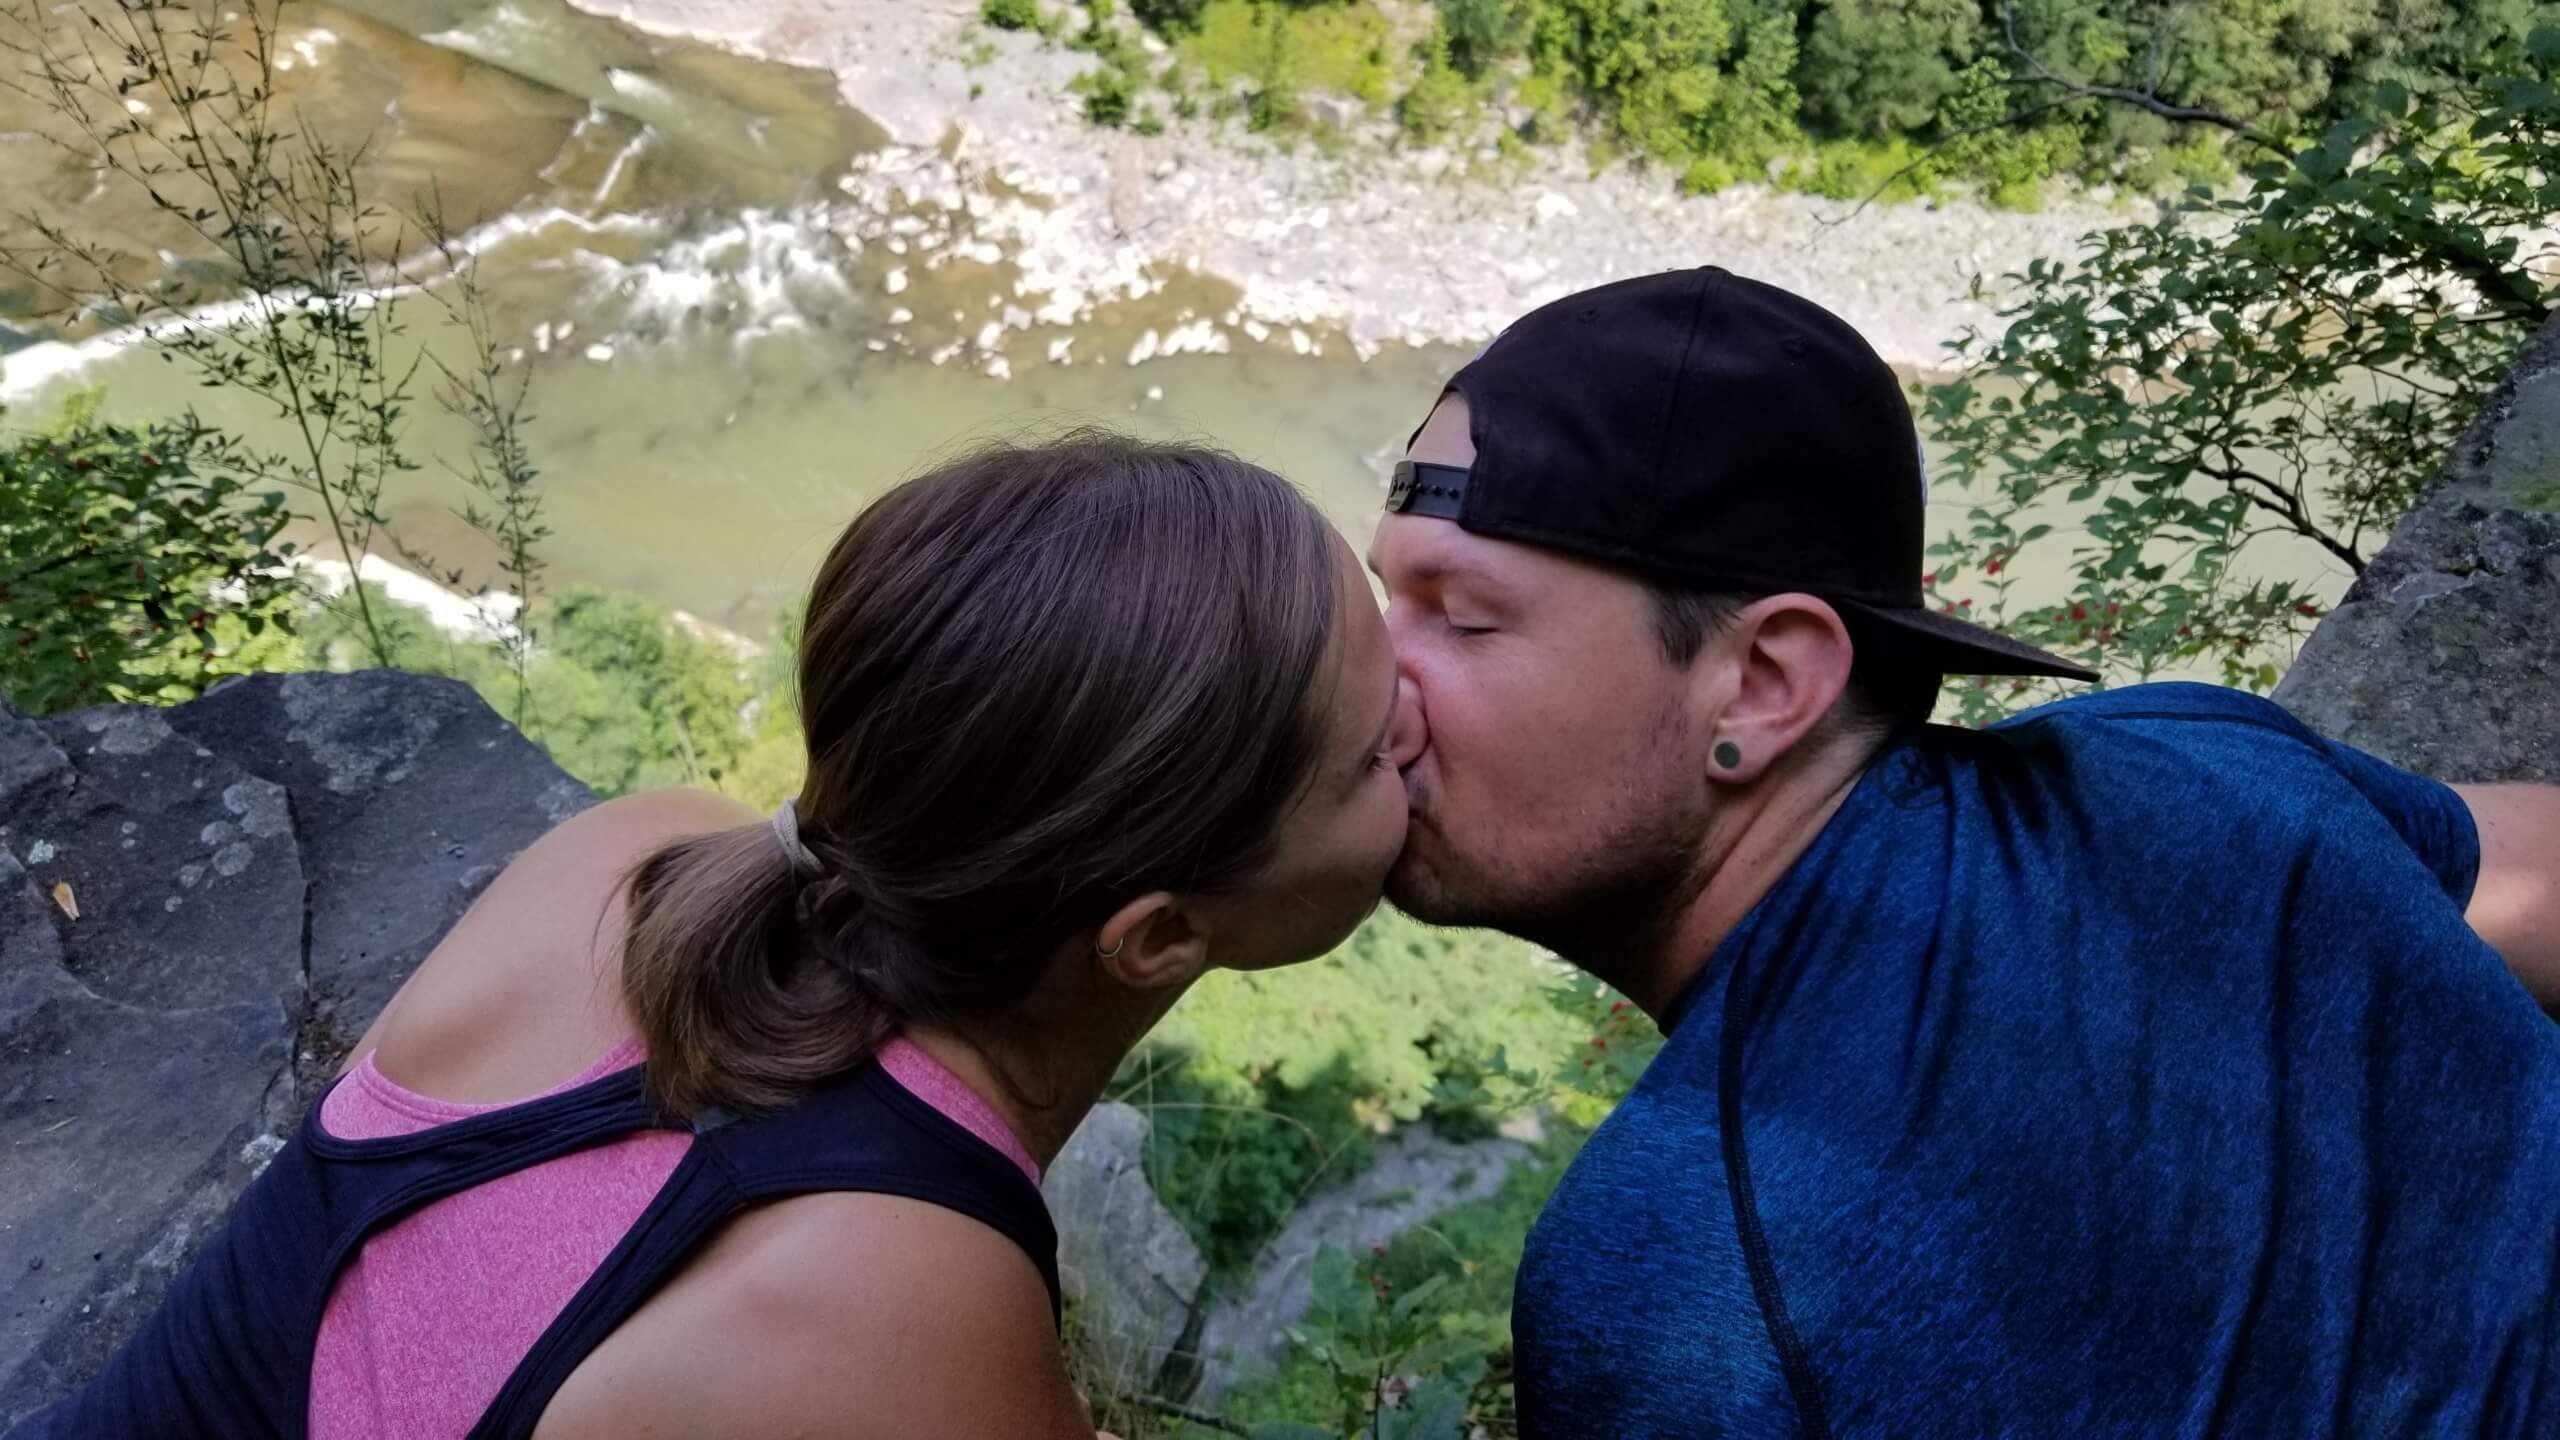 Dennis and Liz kissing over ledge and river